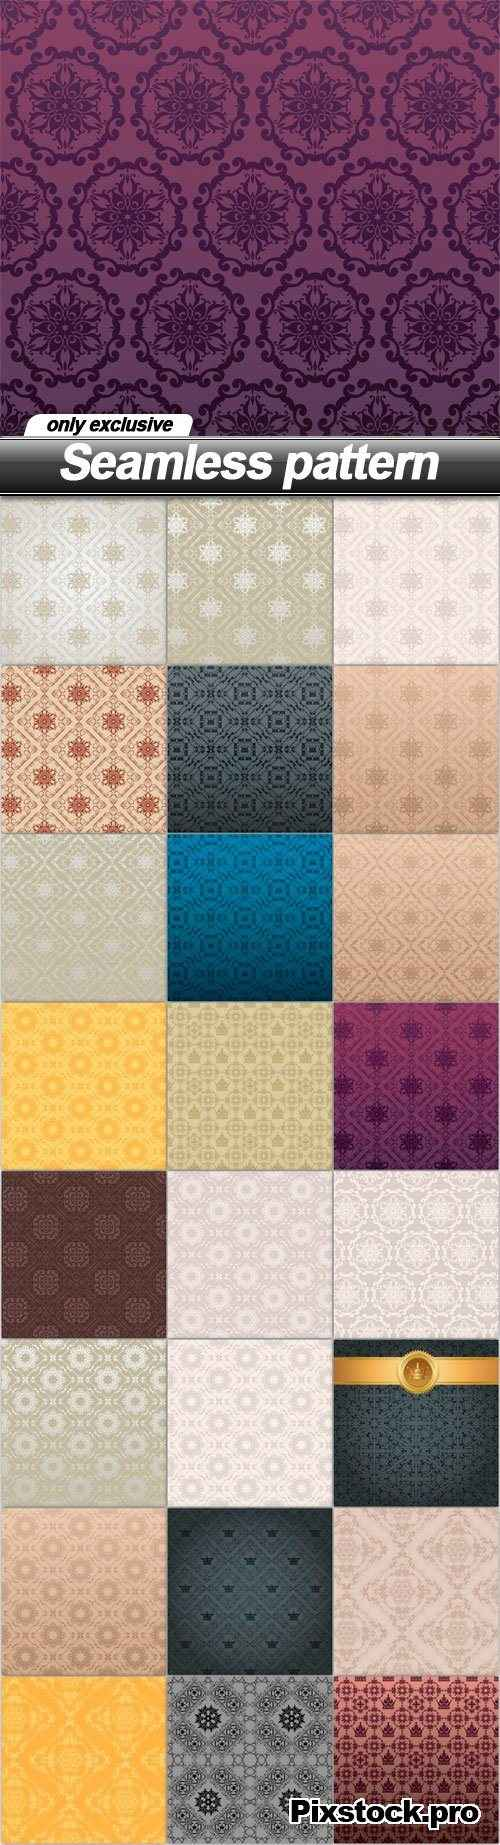 Seamless pattern – 25 EPS